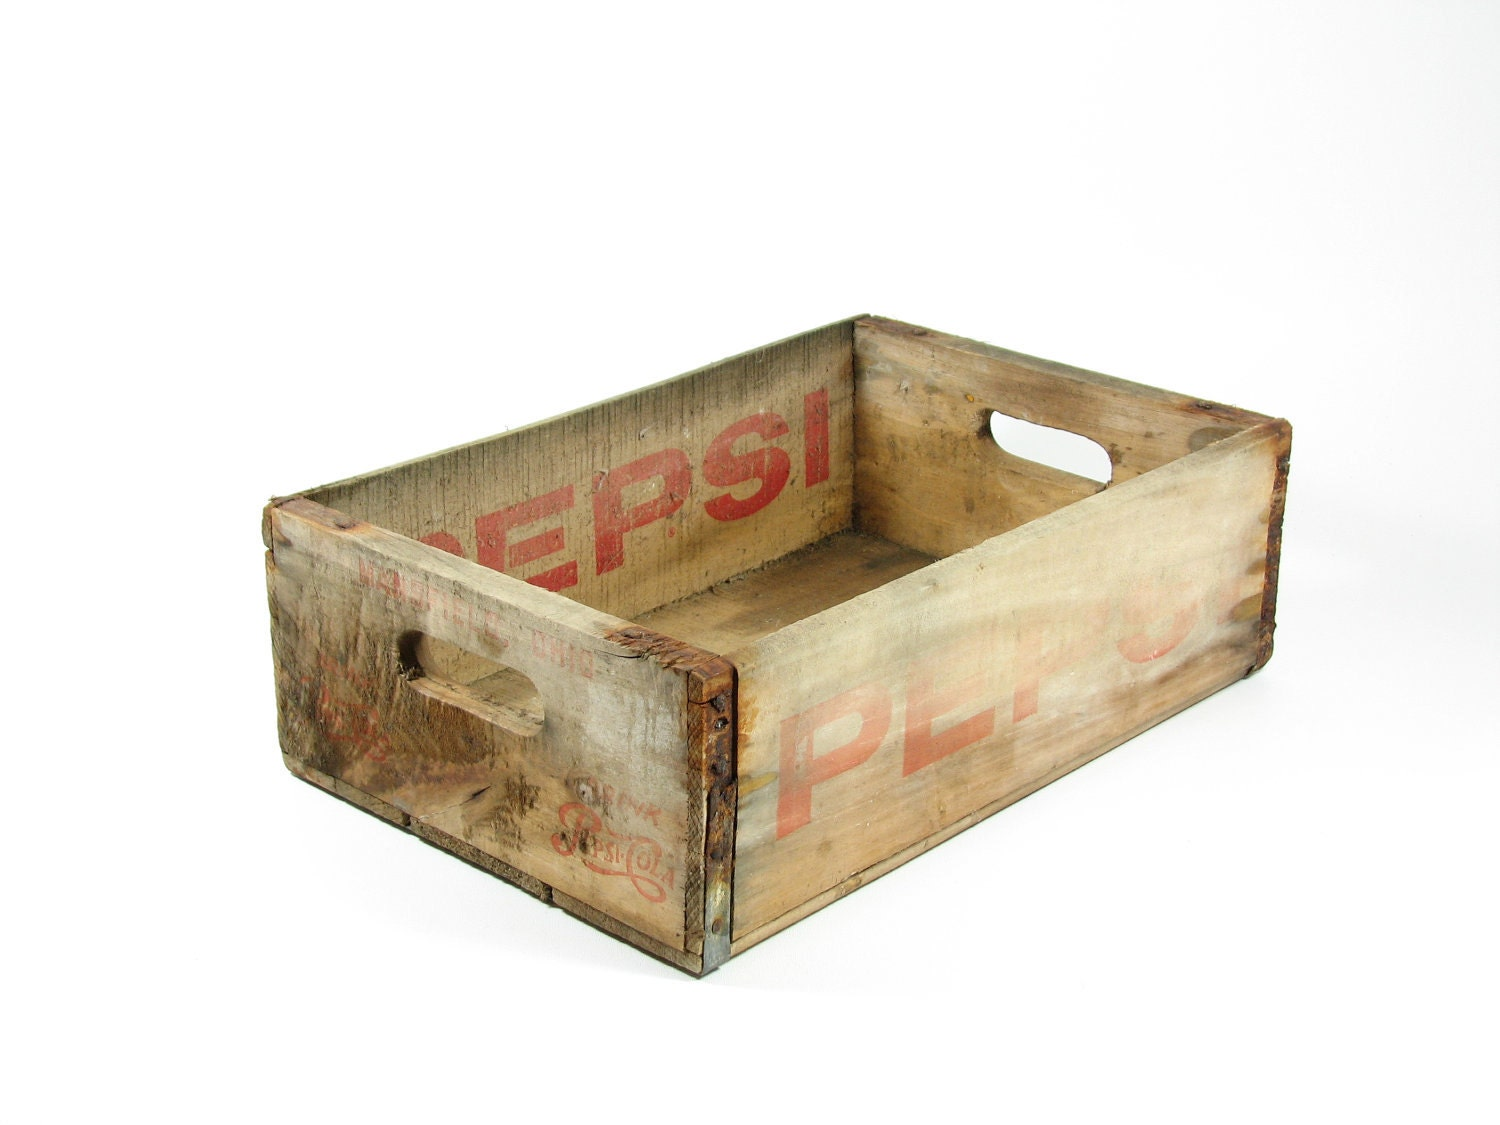 Vintage Wood Pepsi Crate Wooden Box Red Logo by BridgewoodPlace